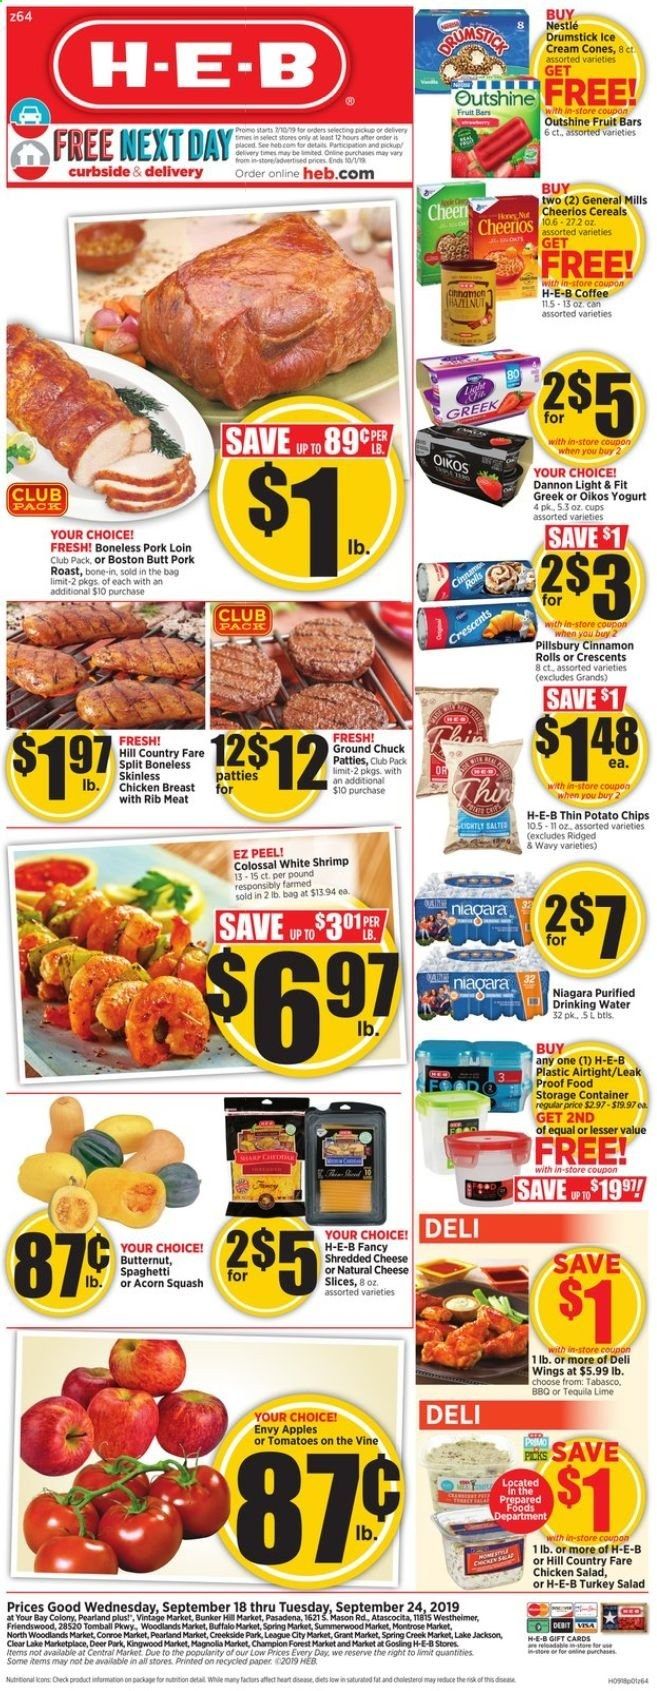 H-E-B Flyer  - 09.18.2019 - 09.24.2019. Page 1.